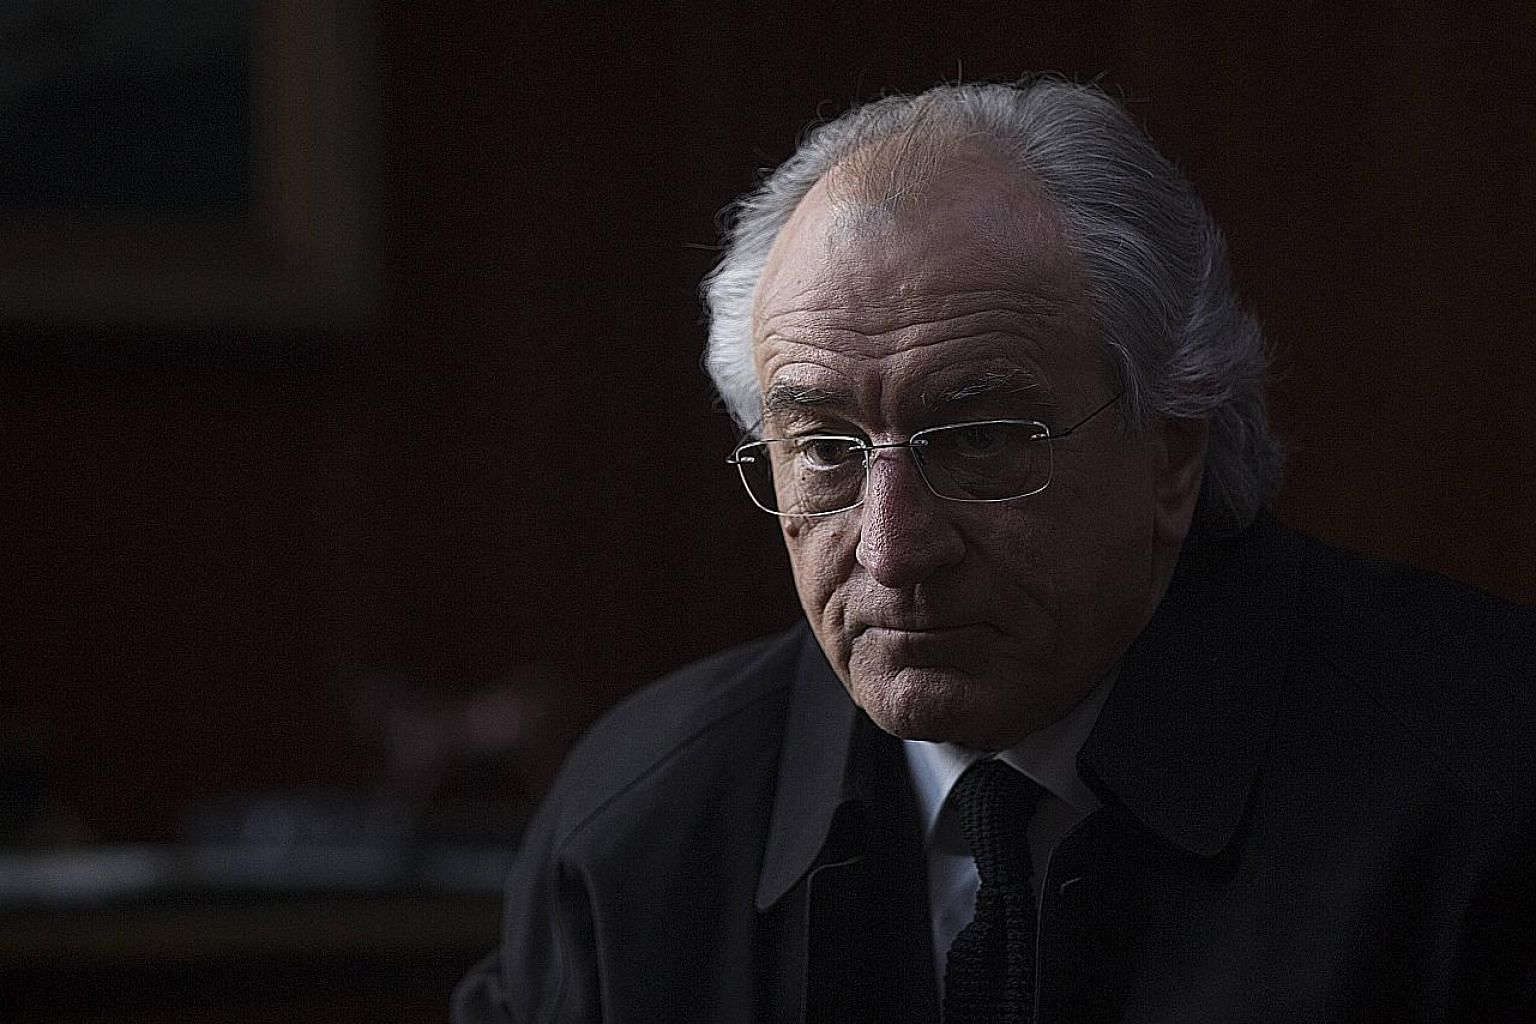 Robert de Niro as Bernie Madoff in the television movie The Wizard Of Lies.